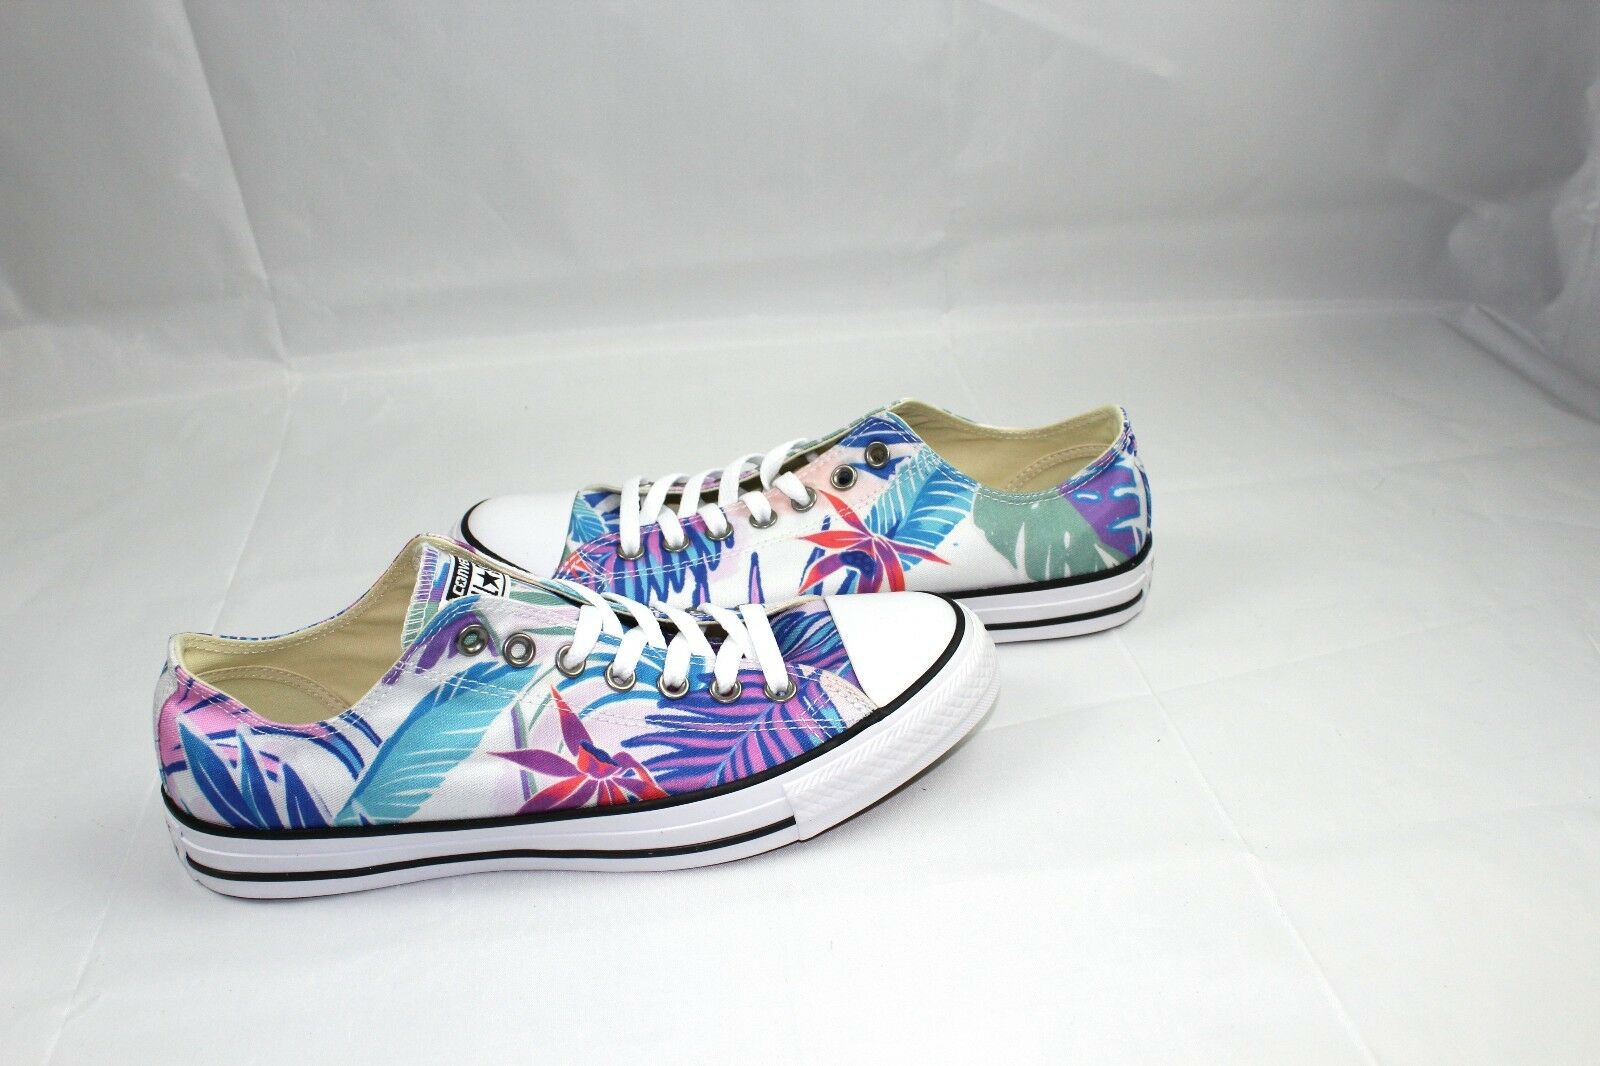 42ee161c30dd Converse All Star Ox Floral Tropical 155396F Low Top Shoes Men 10 ...